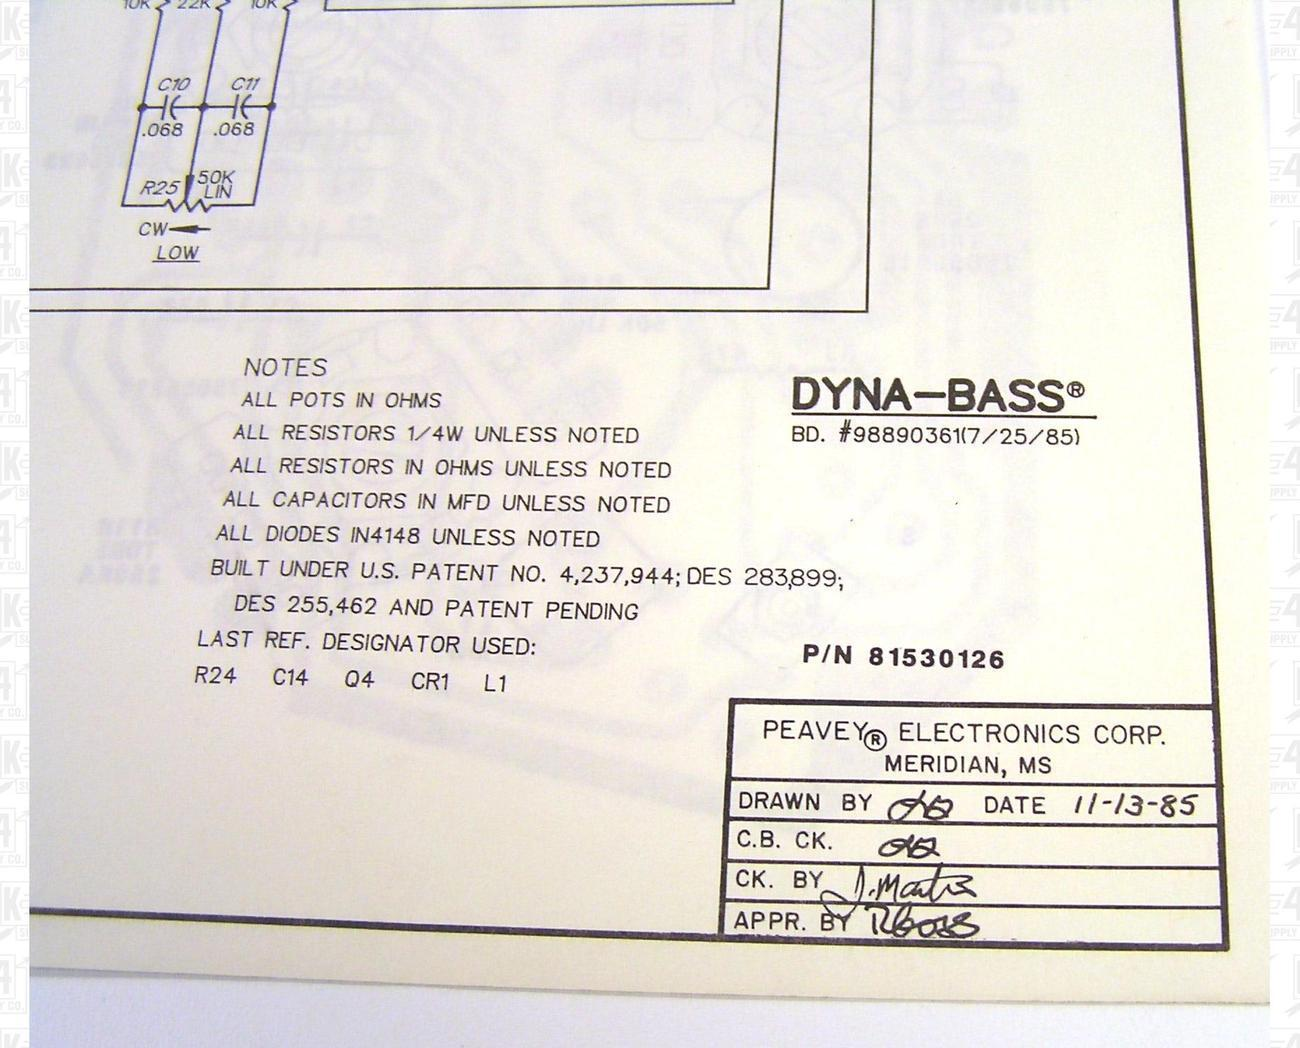 Peavey Dynabass Schematic http://www.bonanza.com/listings/Peavey-Dyna-Bass-Preamp-Schematic-and-Component-Layout/25101868